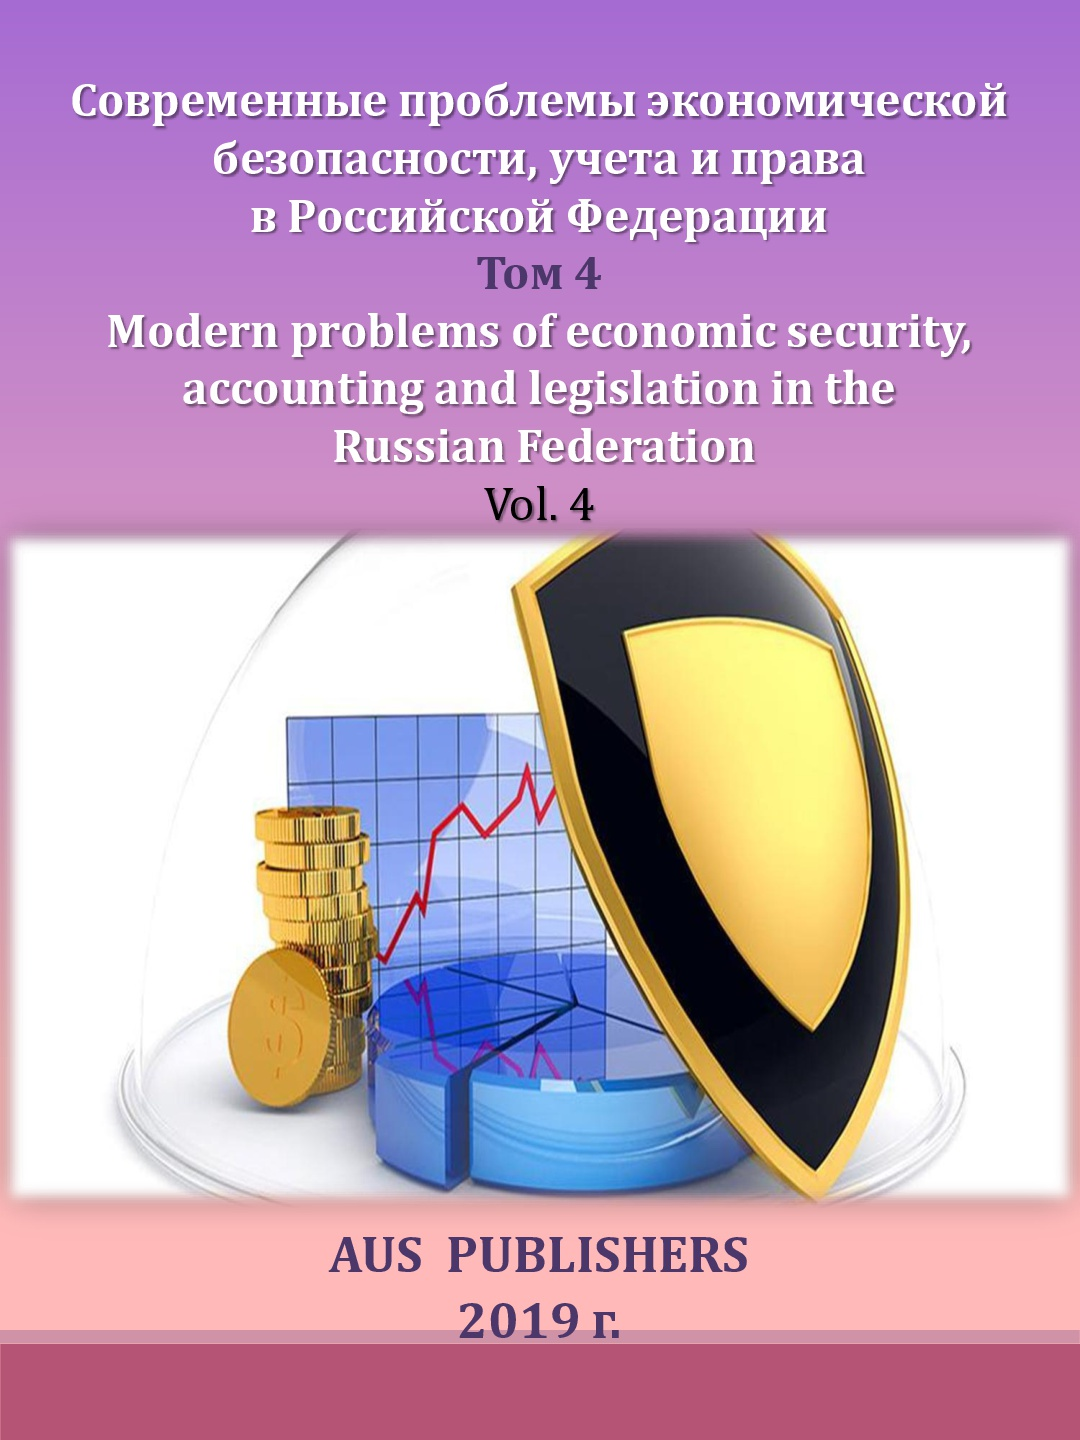 Modern problems of an economic safety, accounting and the right in the Russian Federation. Vol.4